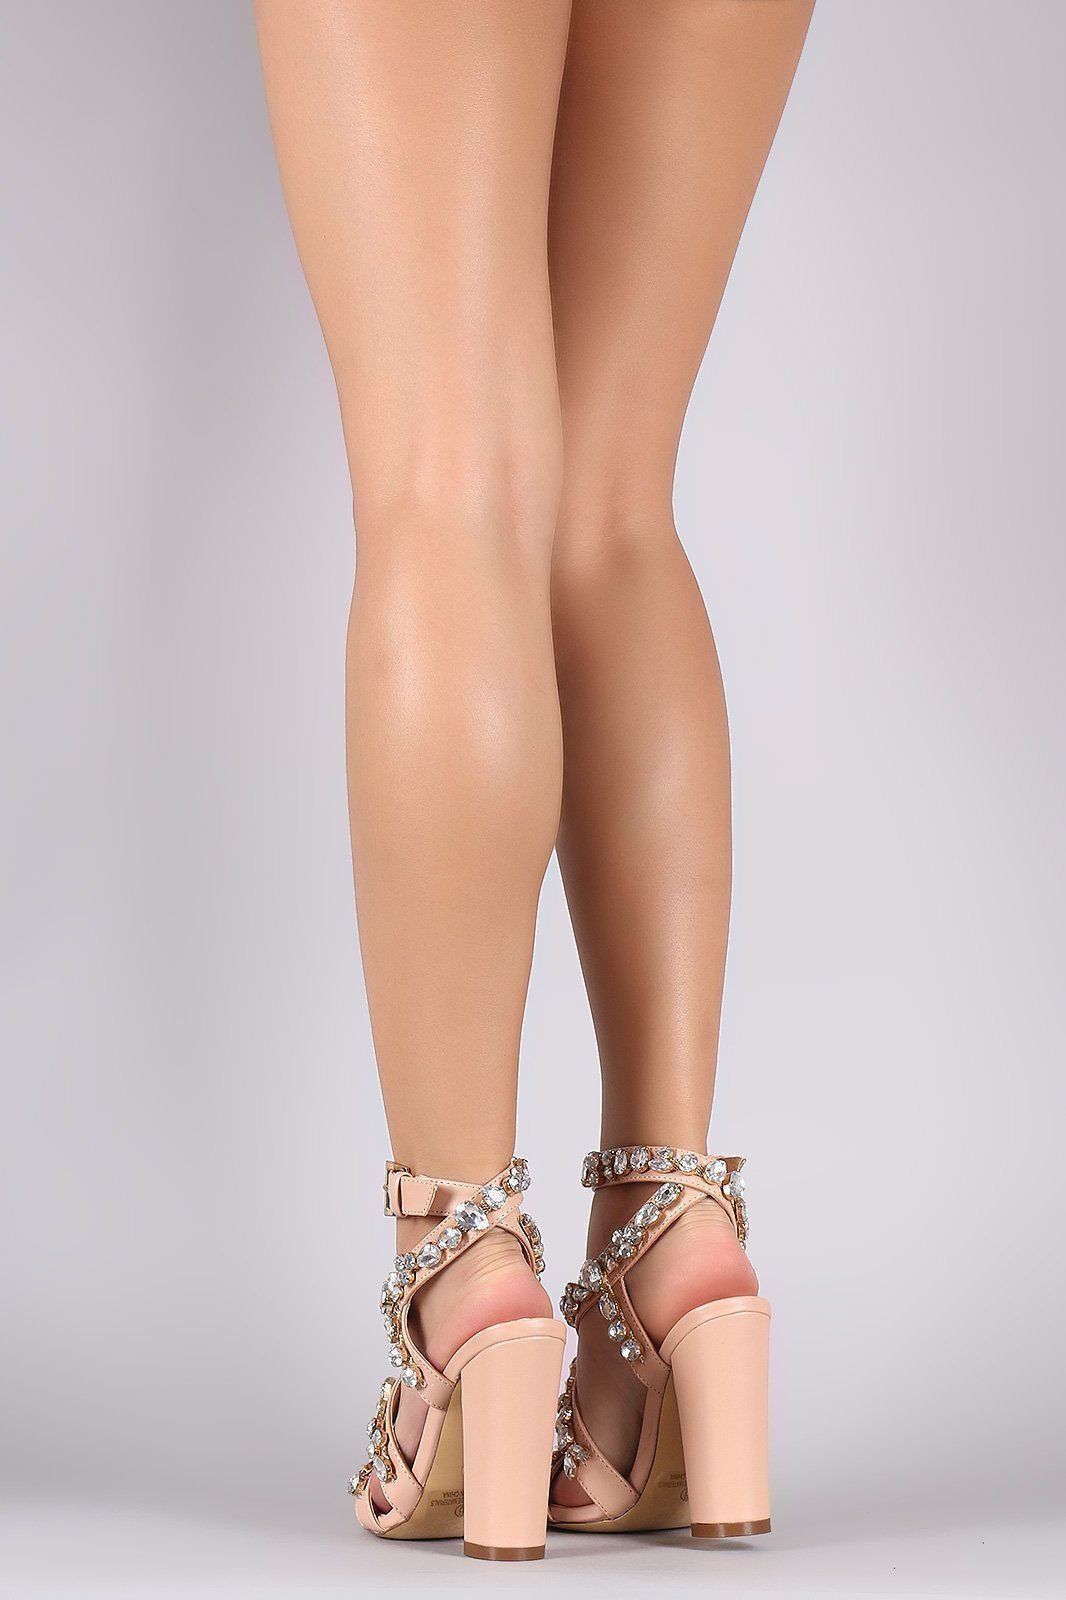 Nude Clear Clear Clear Gemstone Strappy Open Toe Chunky Heel Sandals, US 6-10 4f645b